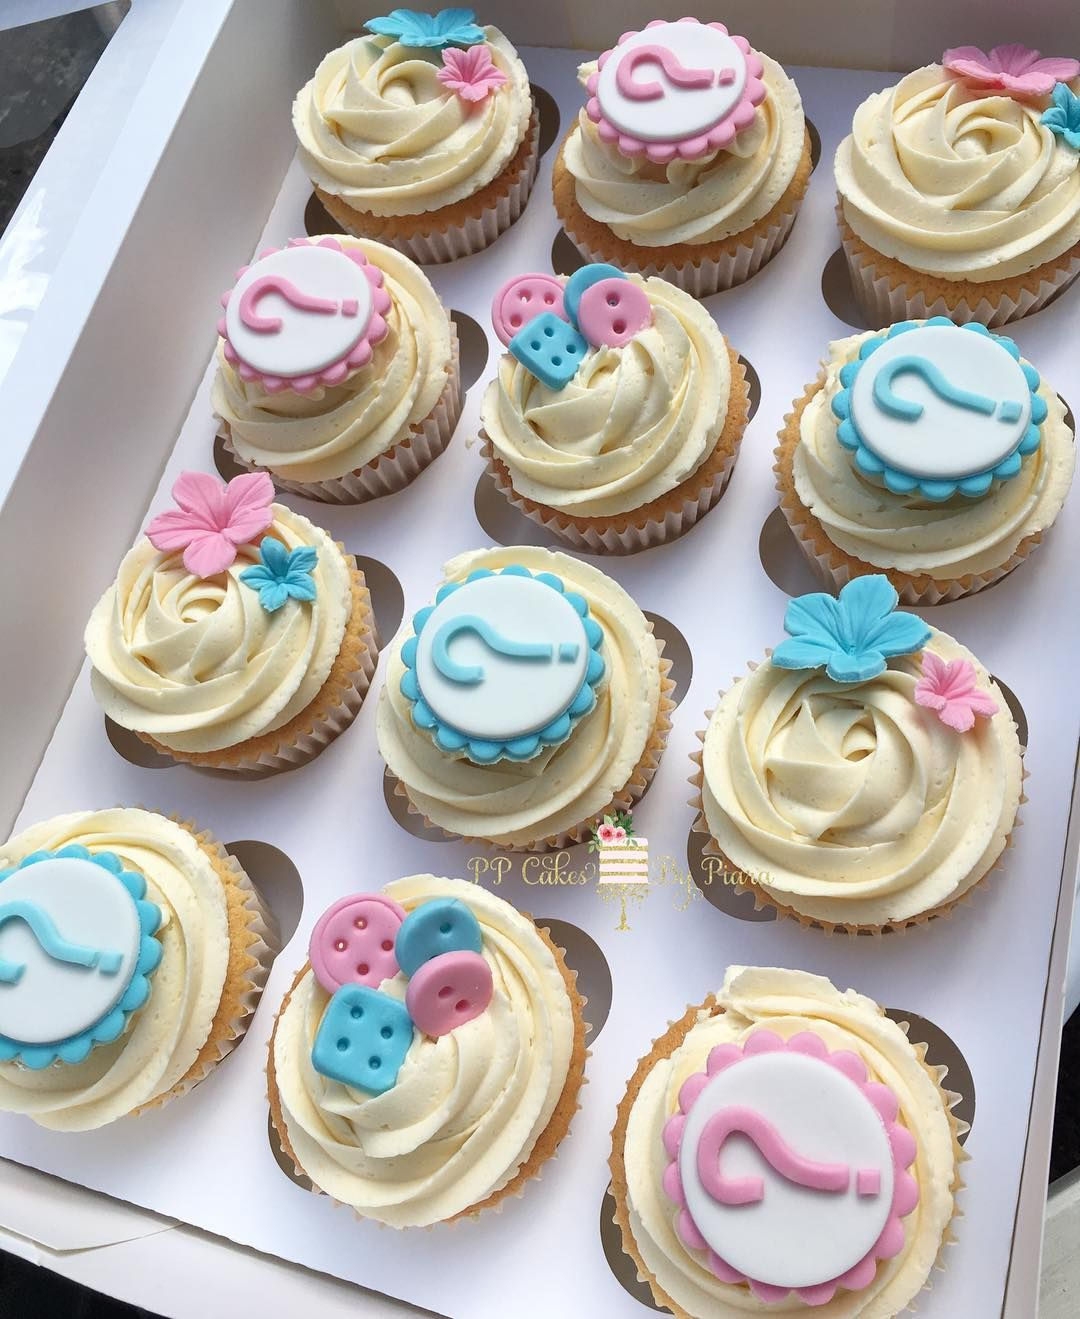 Cute Gender Reveal Cupcakes With Images Gender Reveal Cupcakes